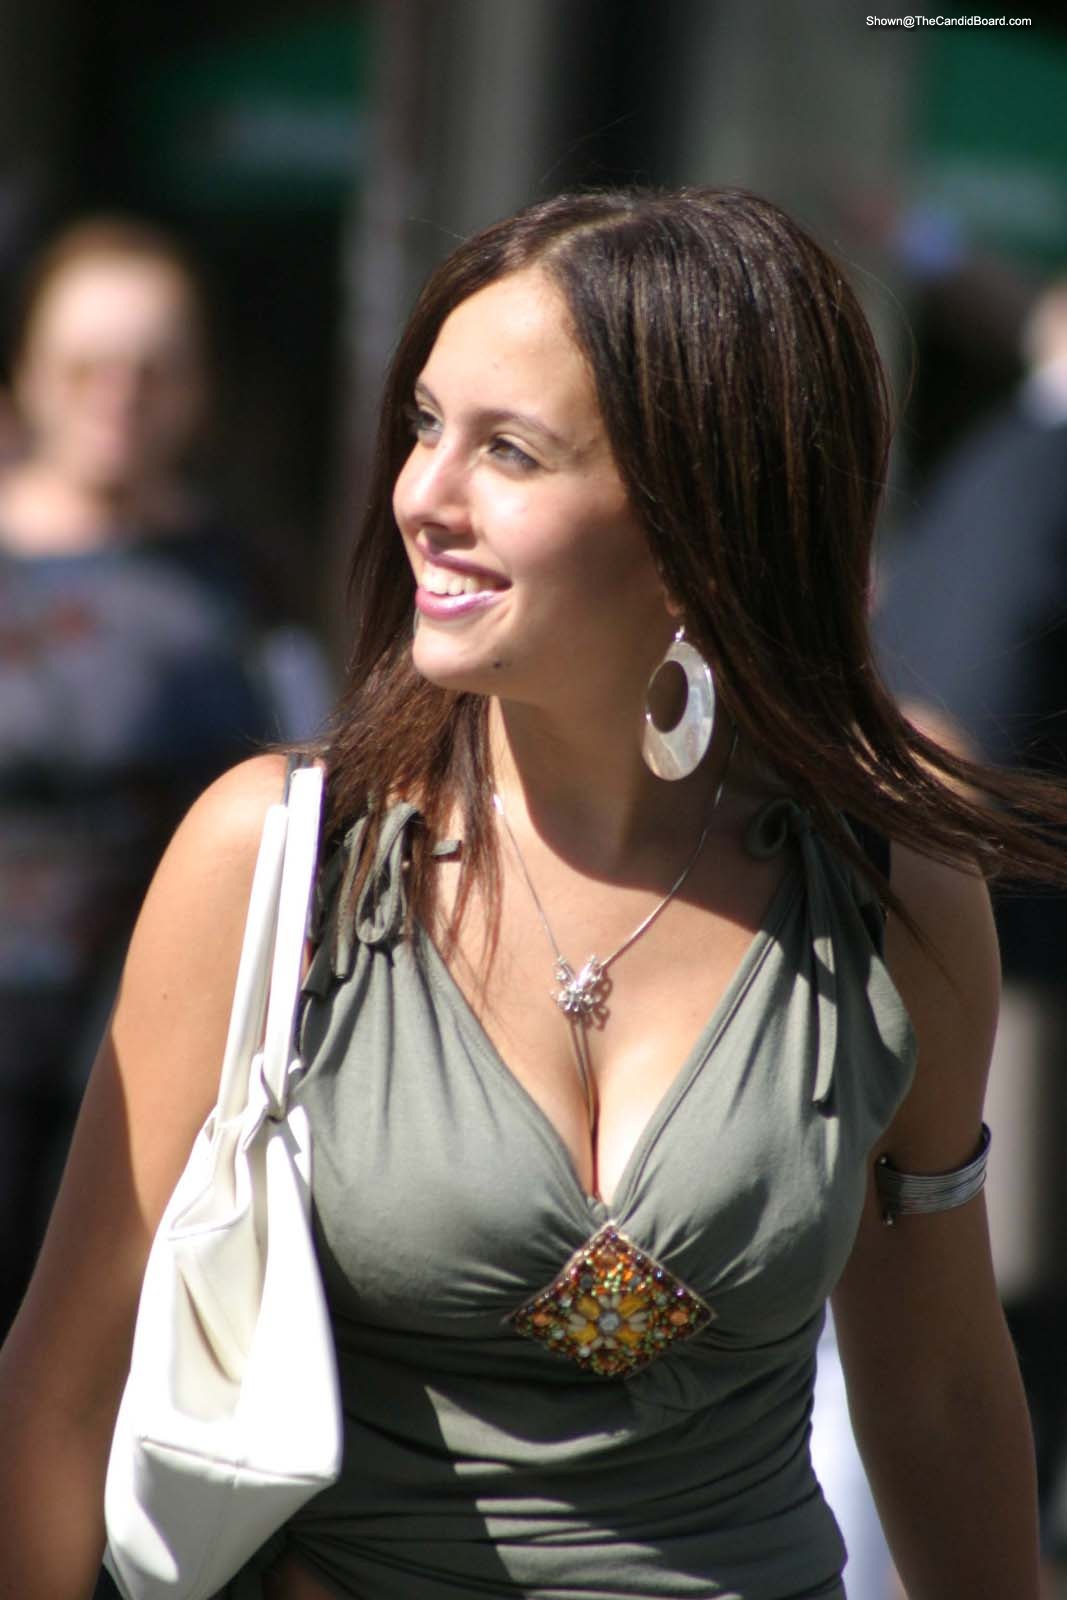 Big Breast Girls Candid Juggs Are The Best-6212